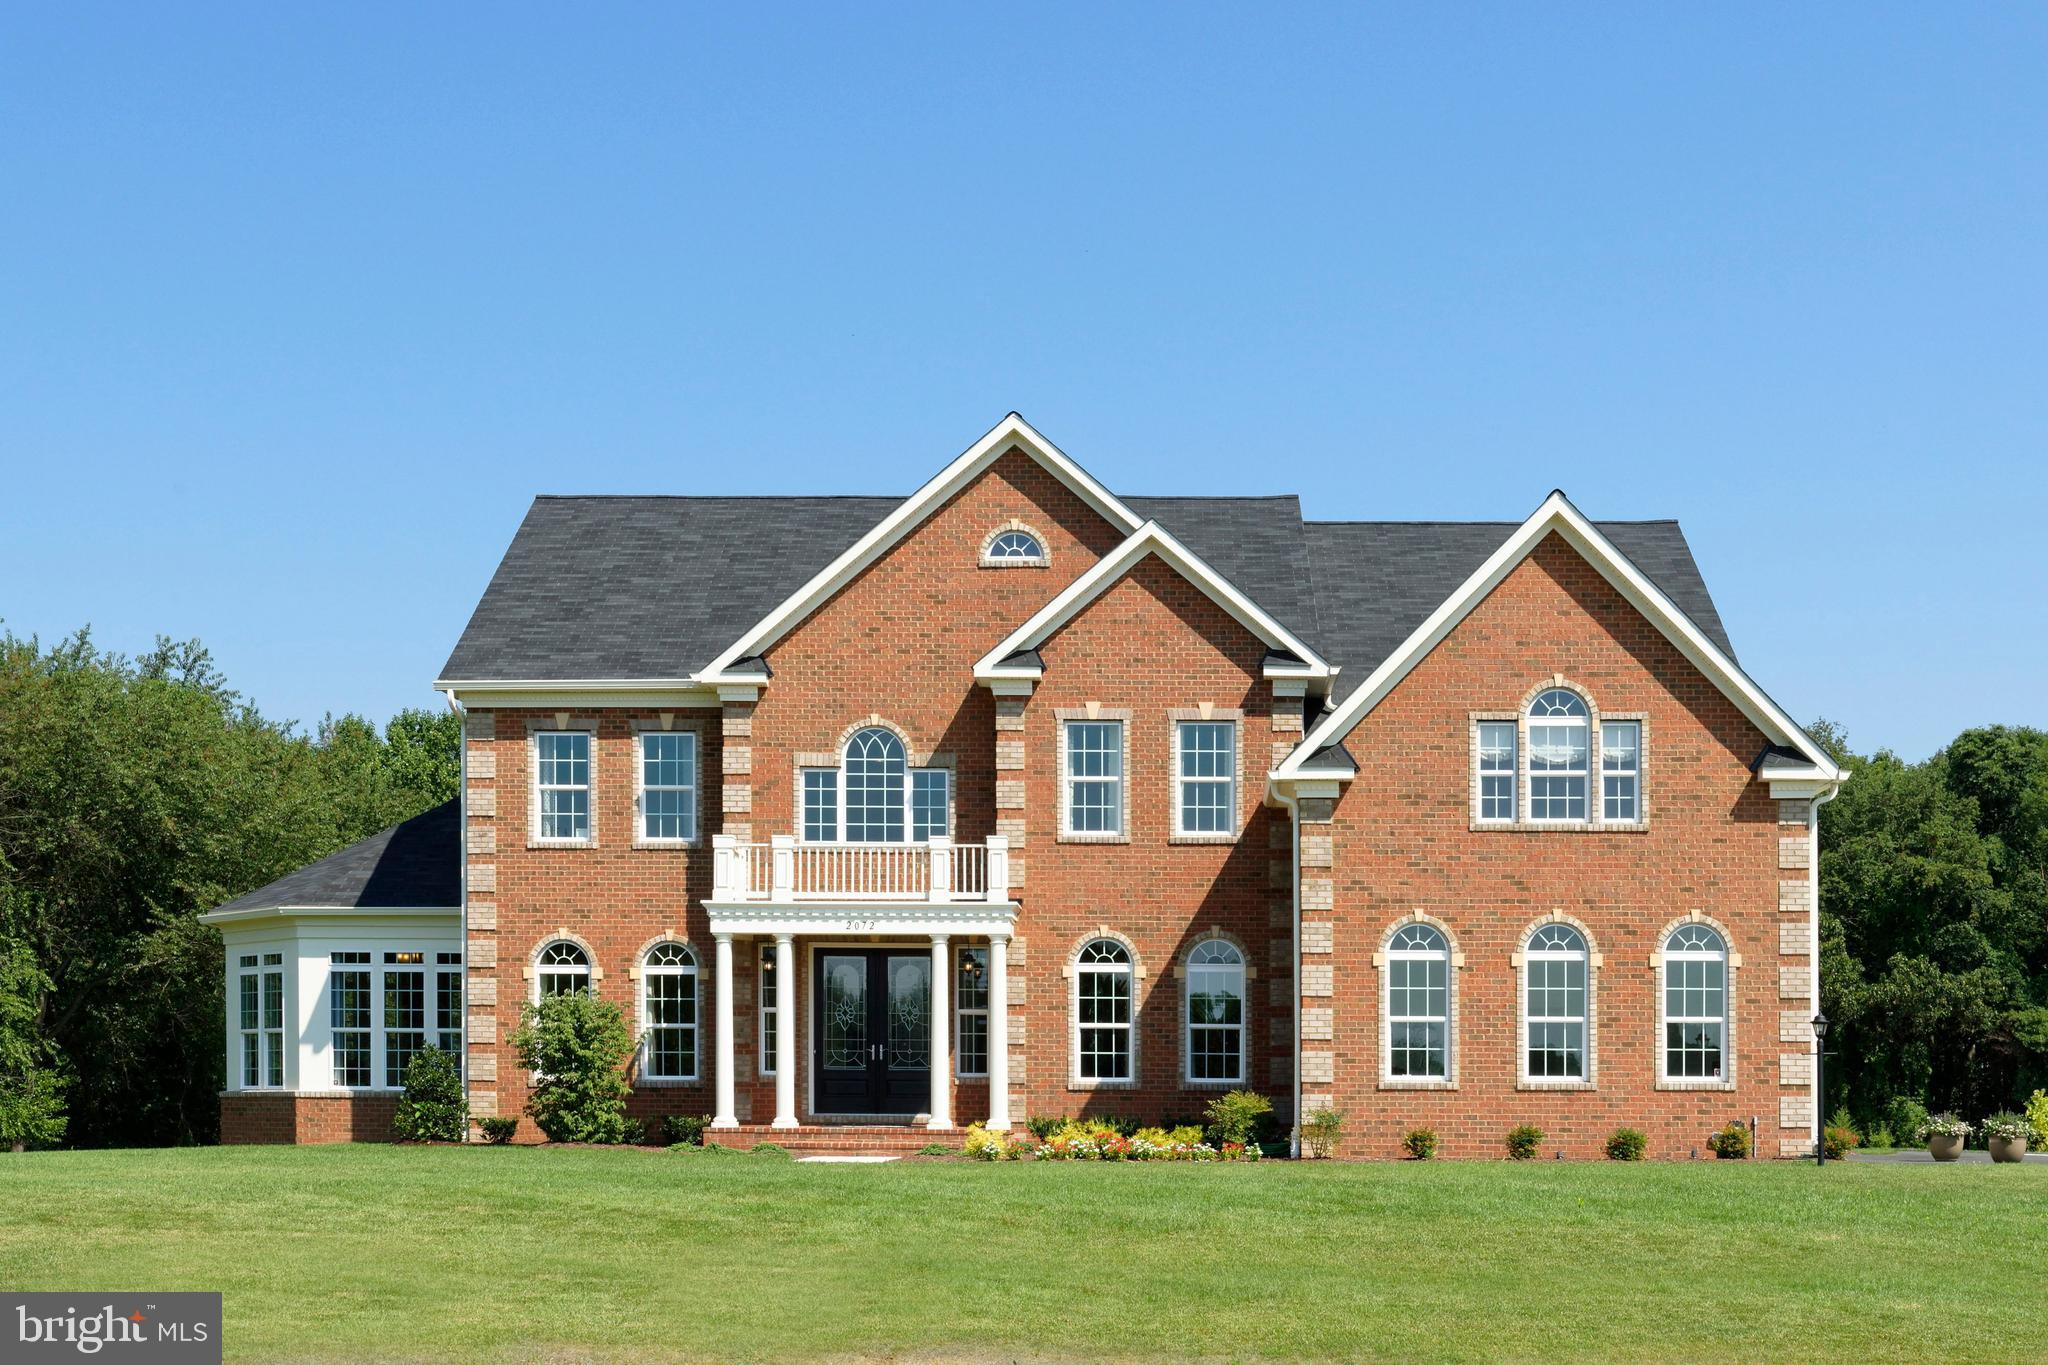 AWARD-WINNING MODEL HOME NOW AVAILABLE. MORGAN CREEK FEATURES 1+ ACRE HOMESITES WITH PUBLIC WATER, S